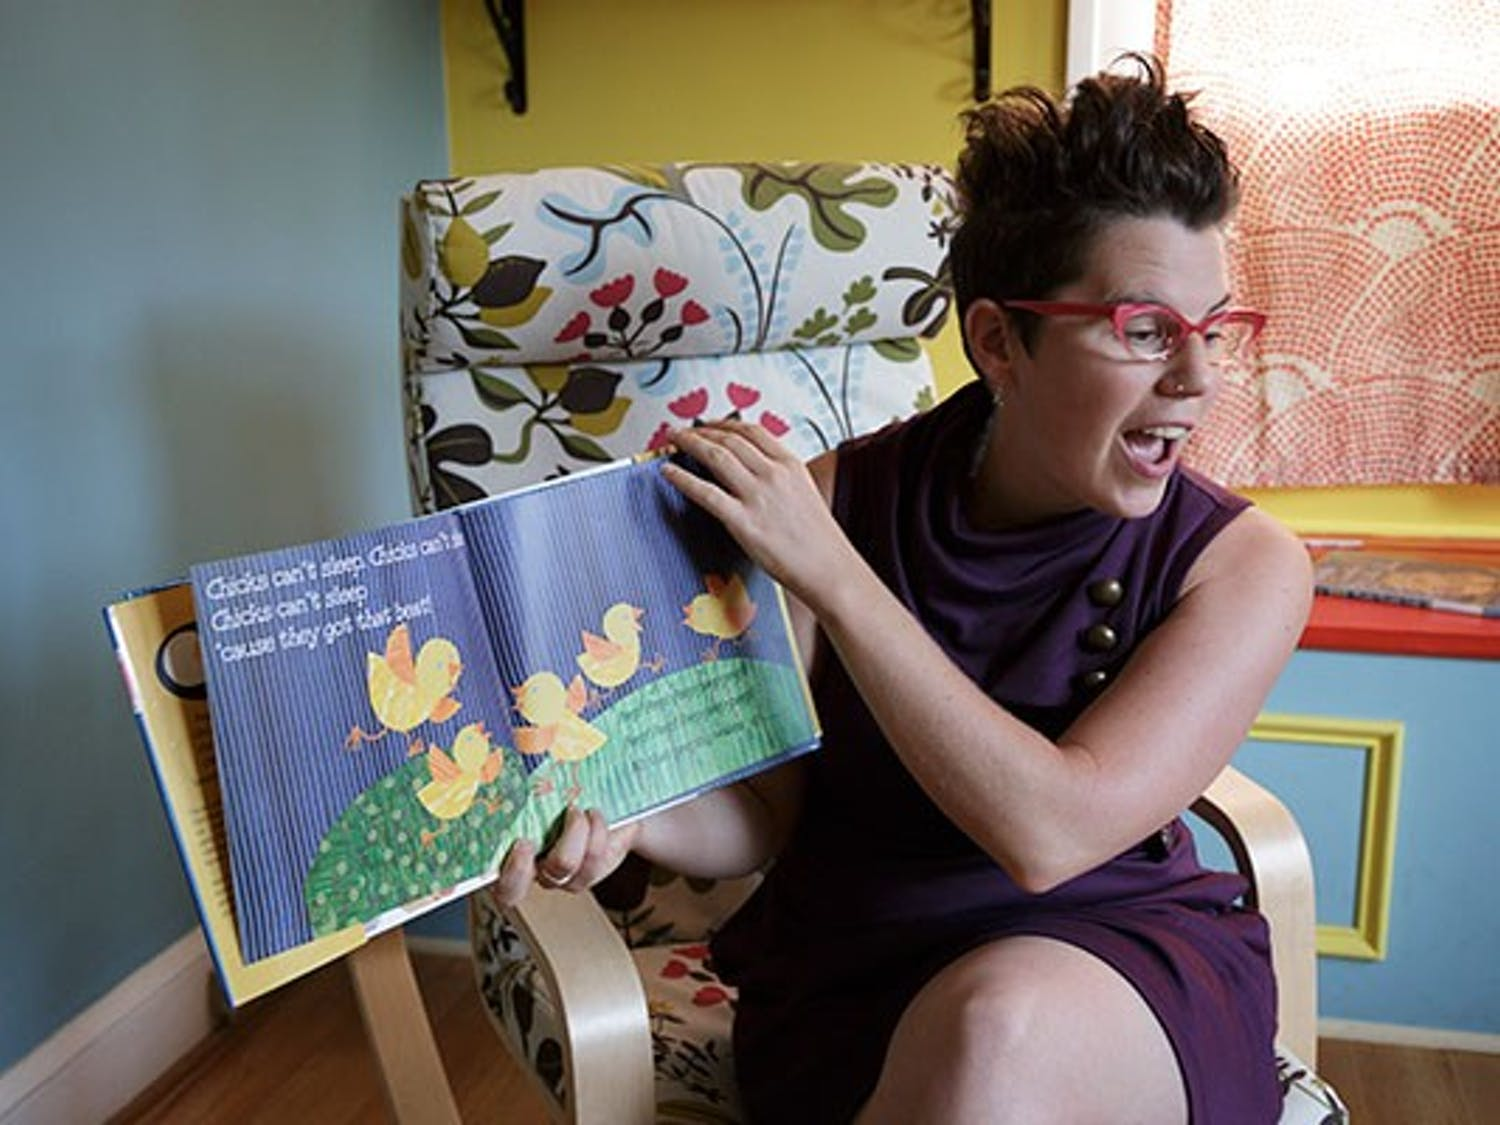 Formerly a librarian, Godfrey now works independently in her children's storytelling venture.